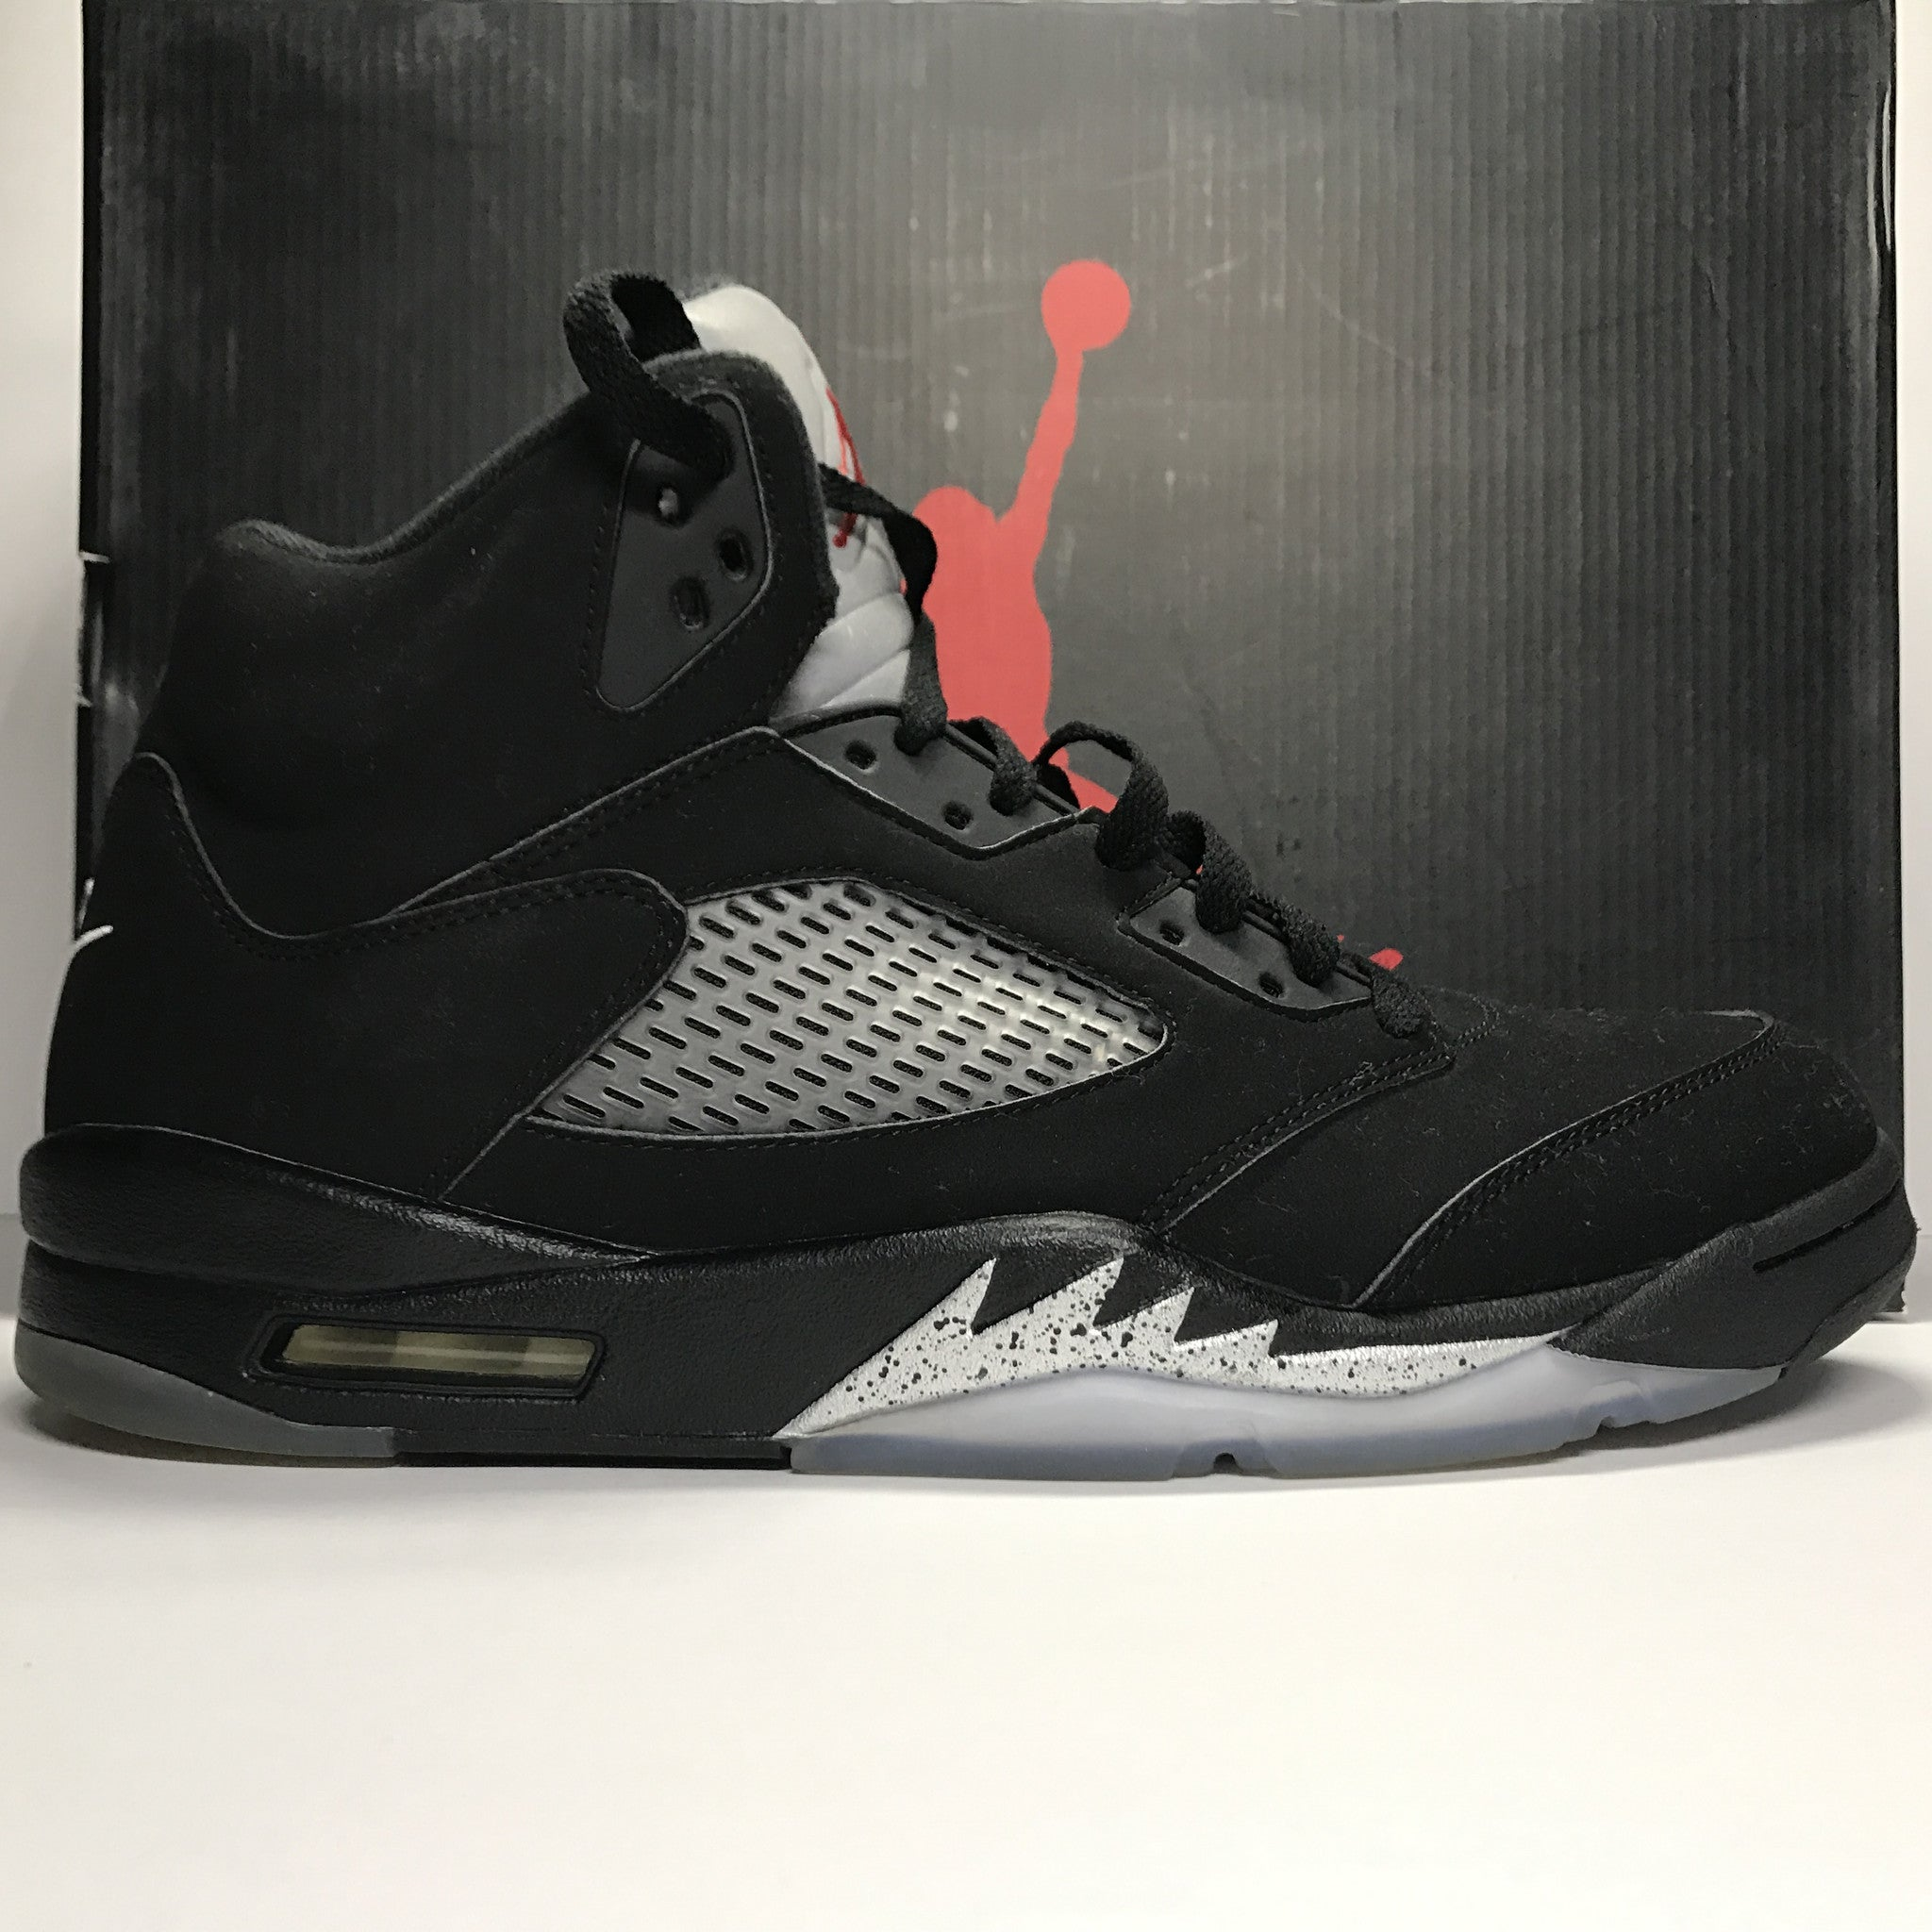 Nike Air Jordan 5 V Retro OG Metallic Black Size 11.5